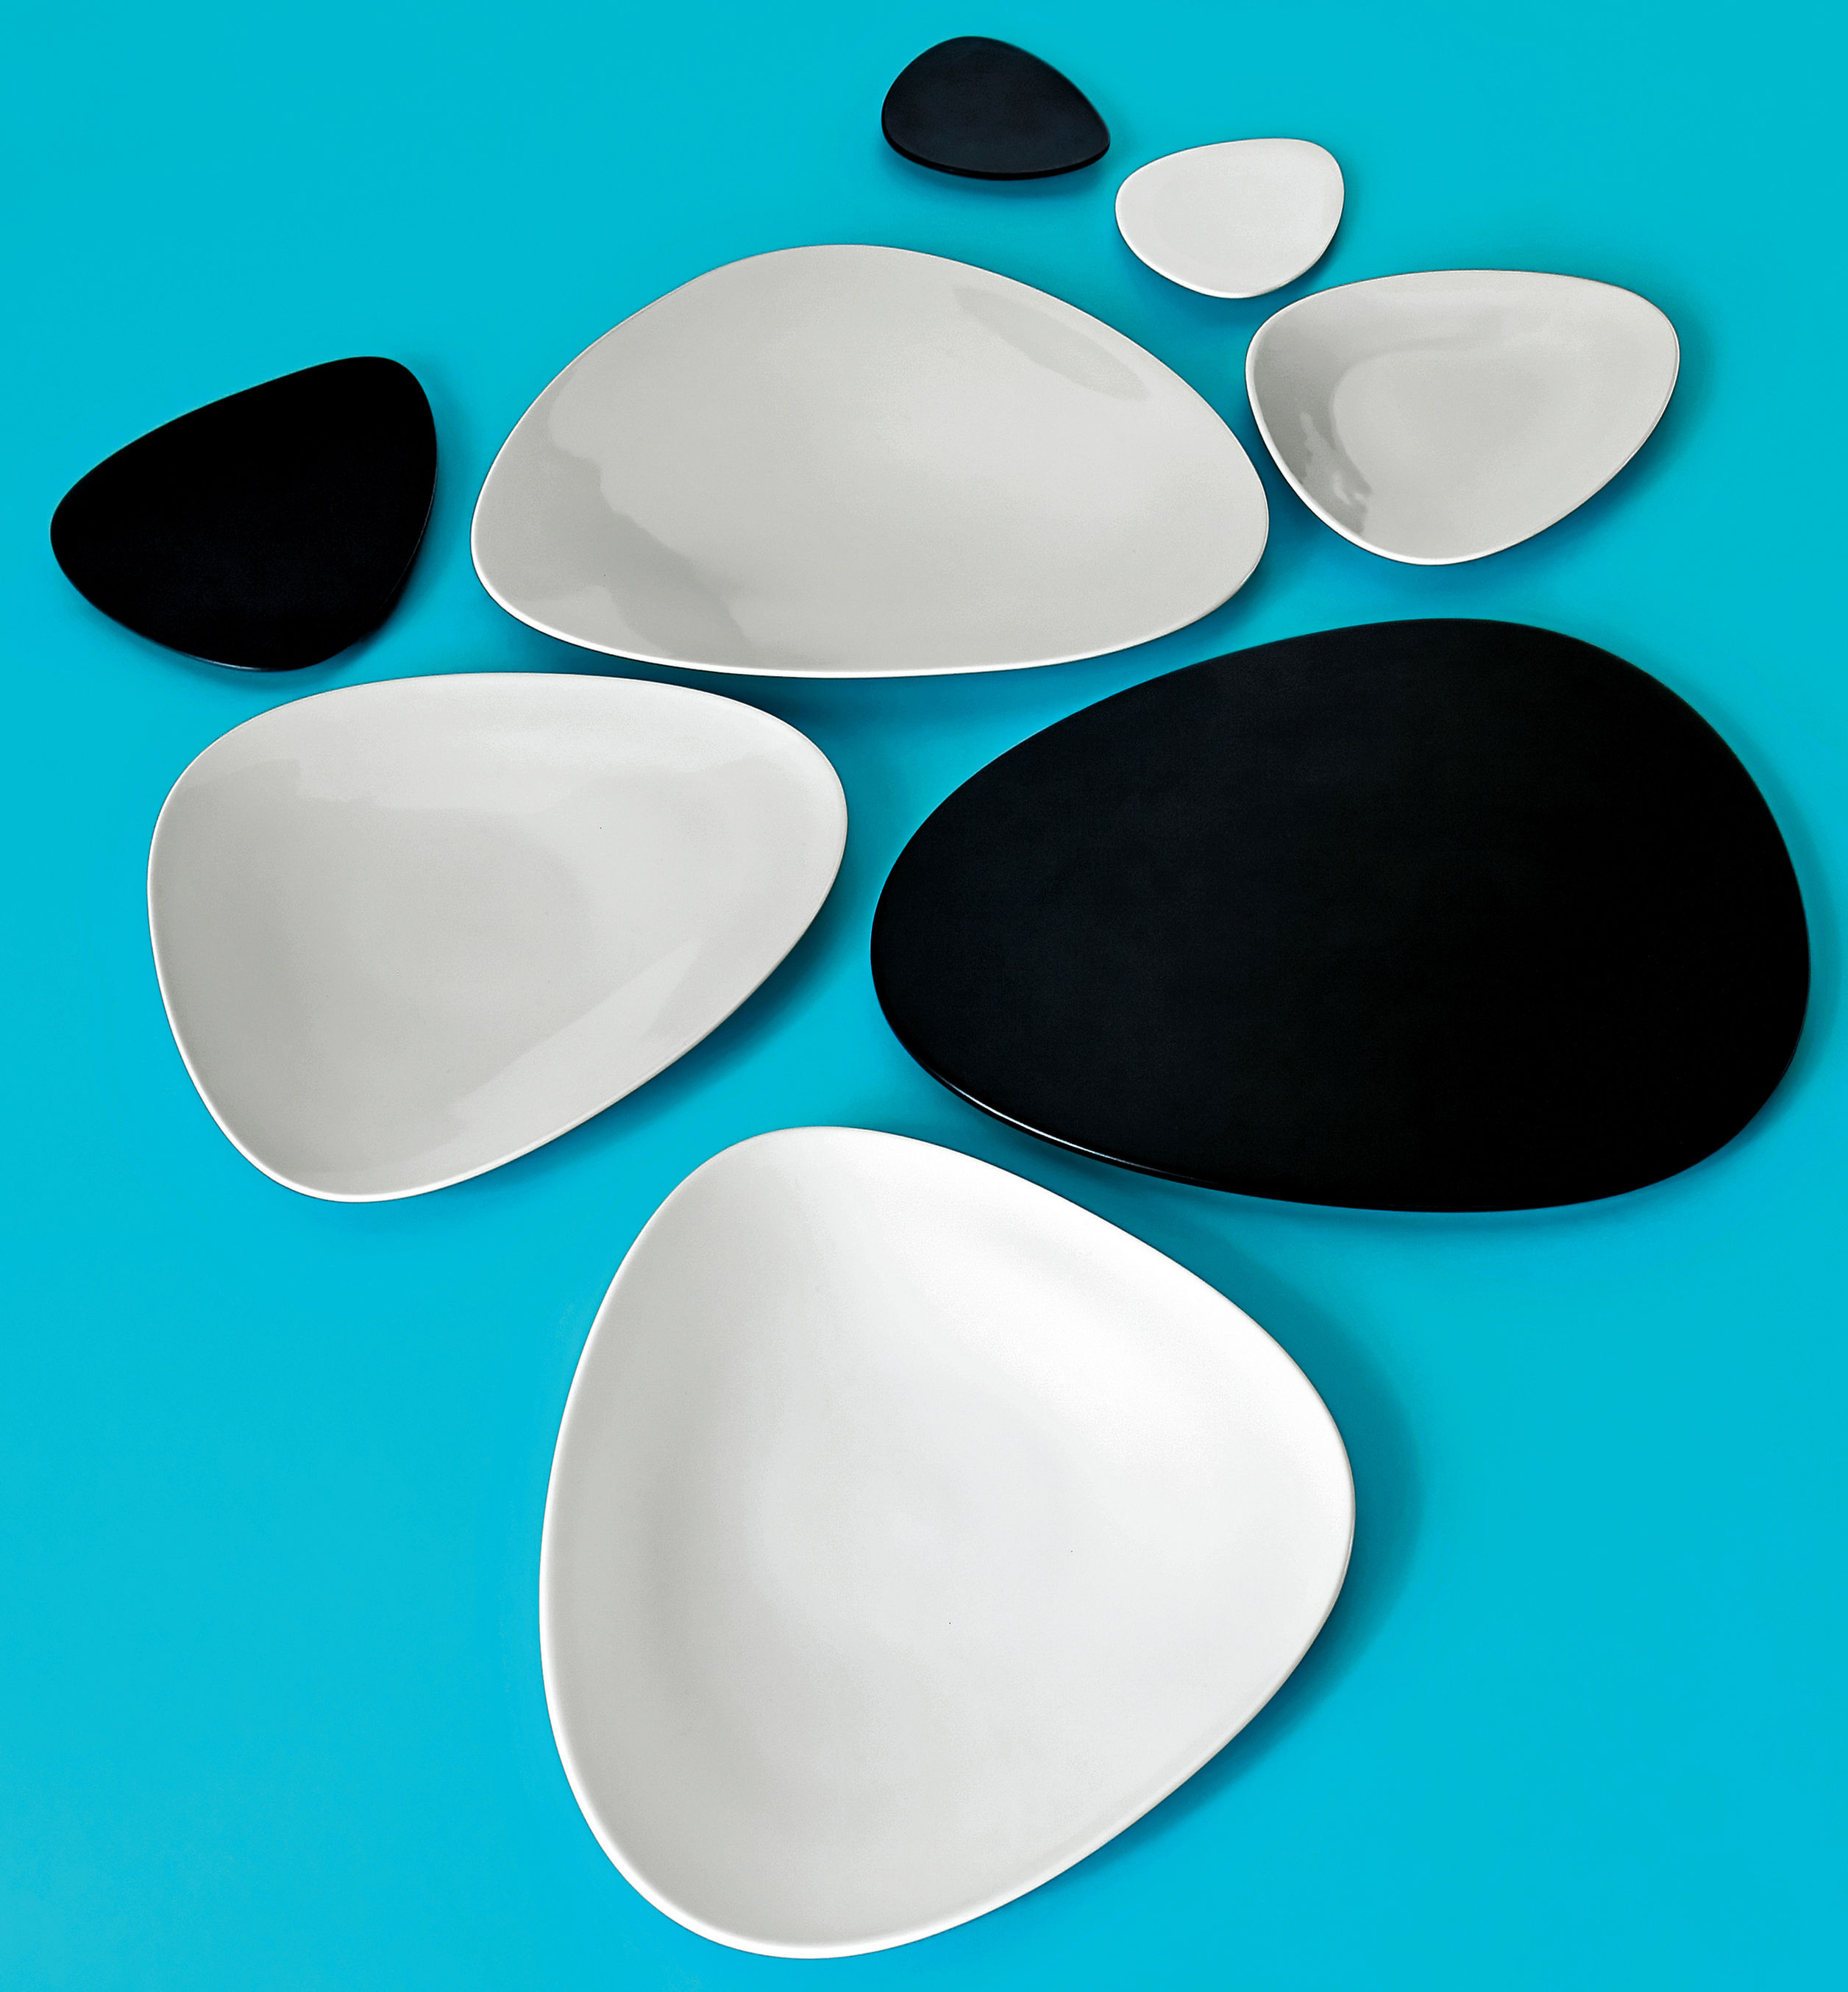 colombina plate white by alessi - zoom